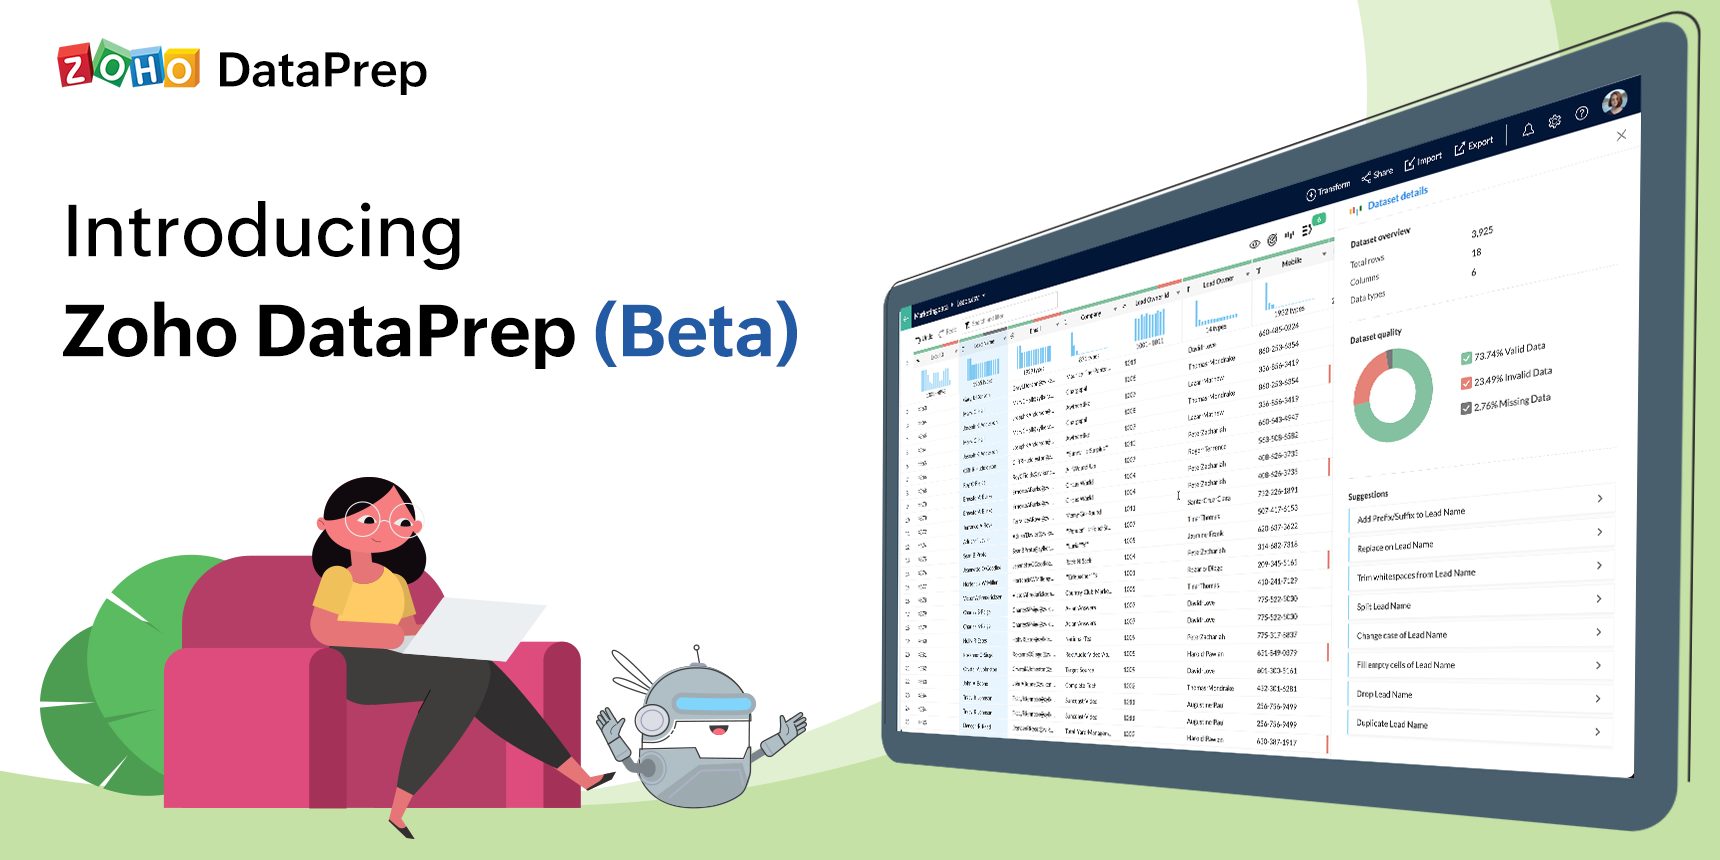 Introducing Zoho DataPrep: An advanced self-service data preparation software